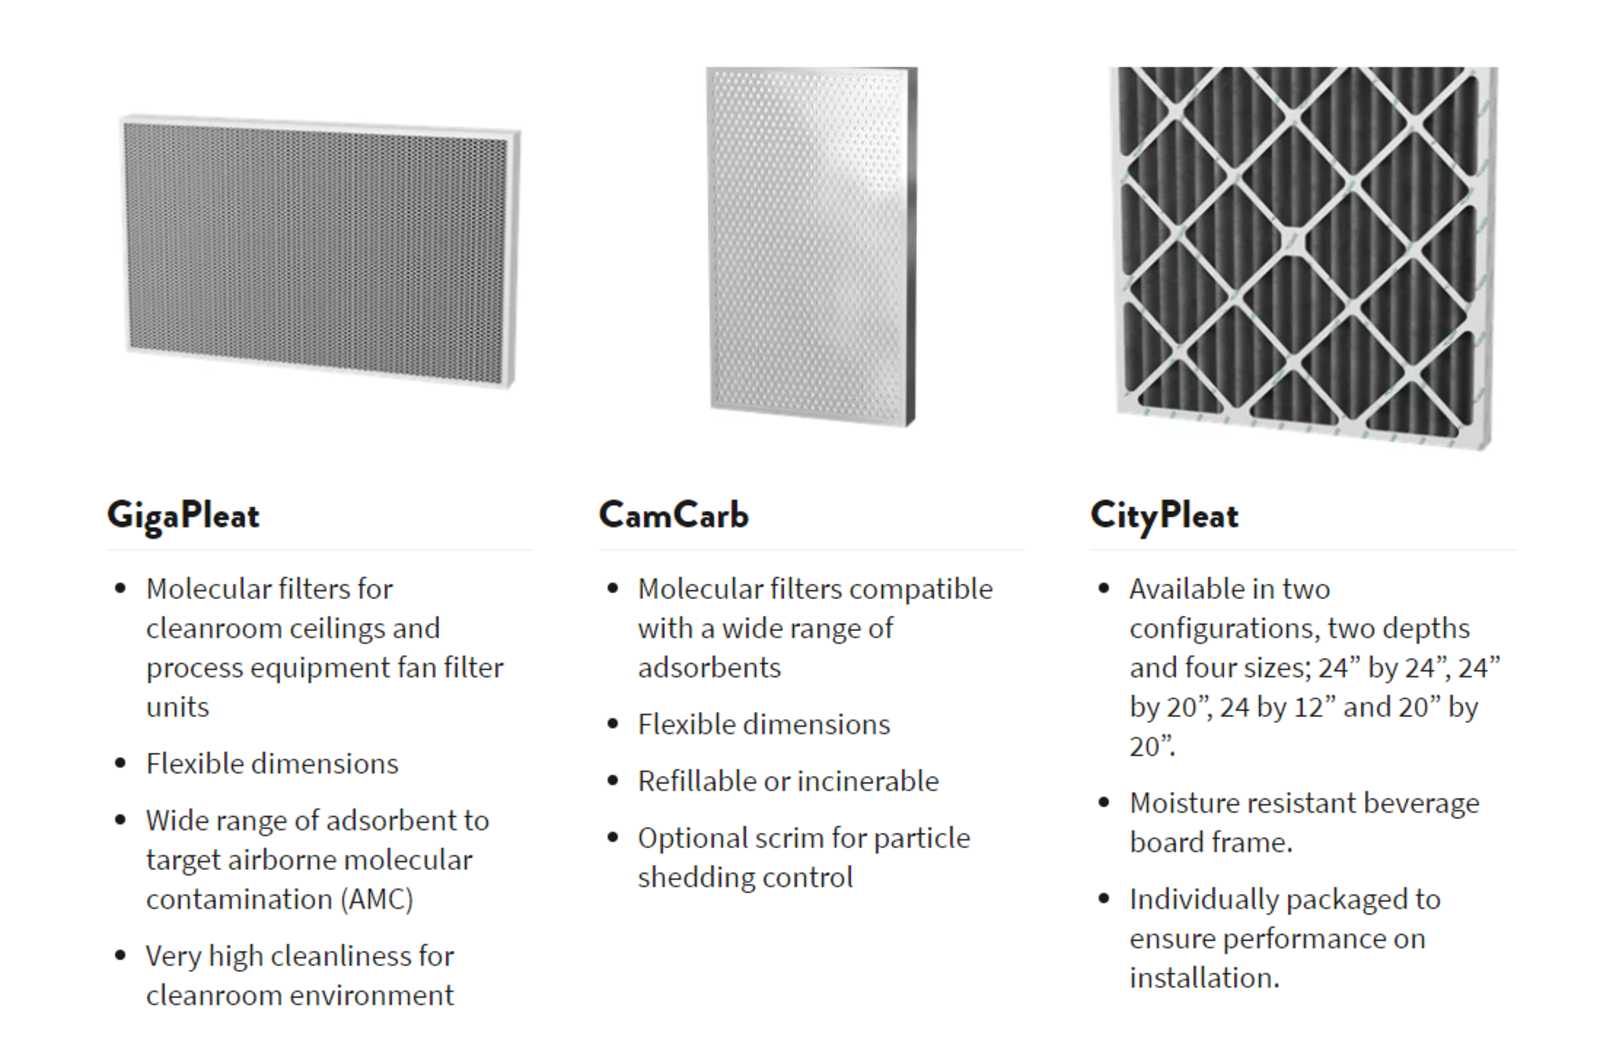 Camfil USA Molecular Filtration Solutions